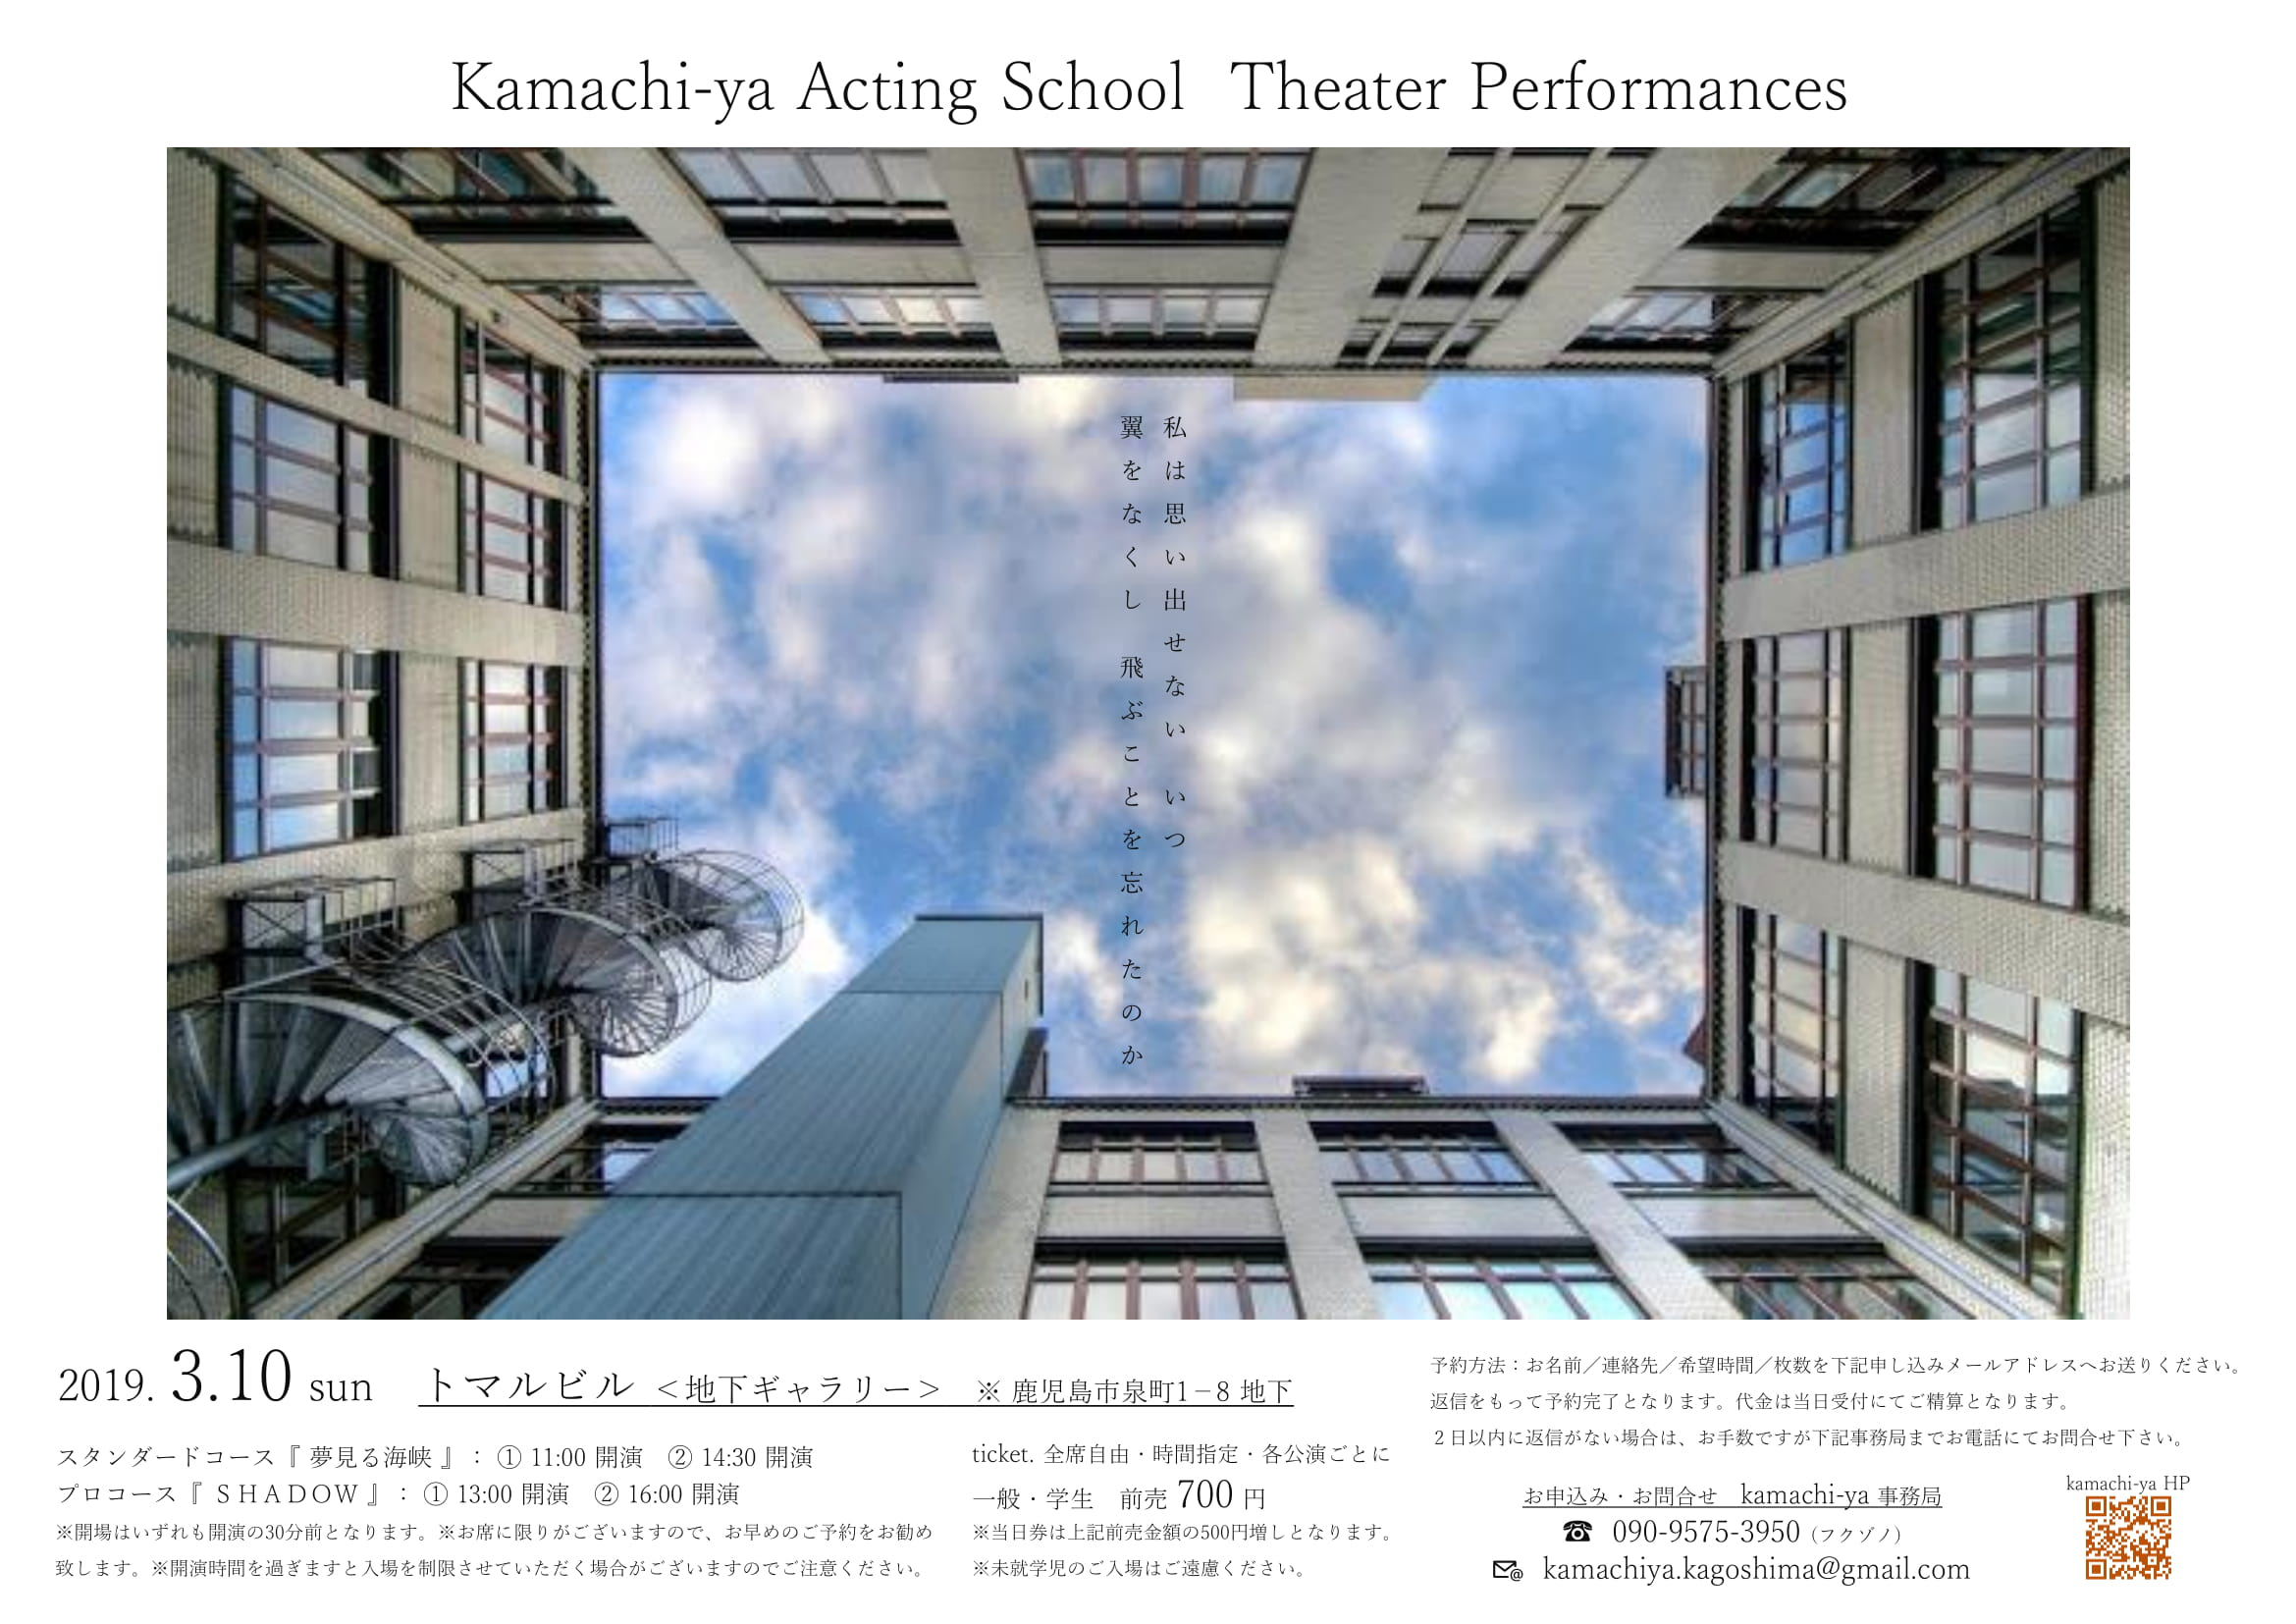 Kamachi-ya Acting School Theater Performances